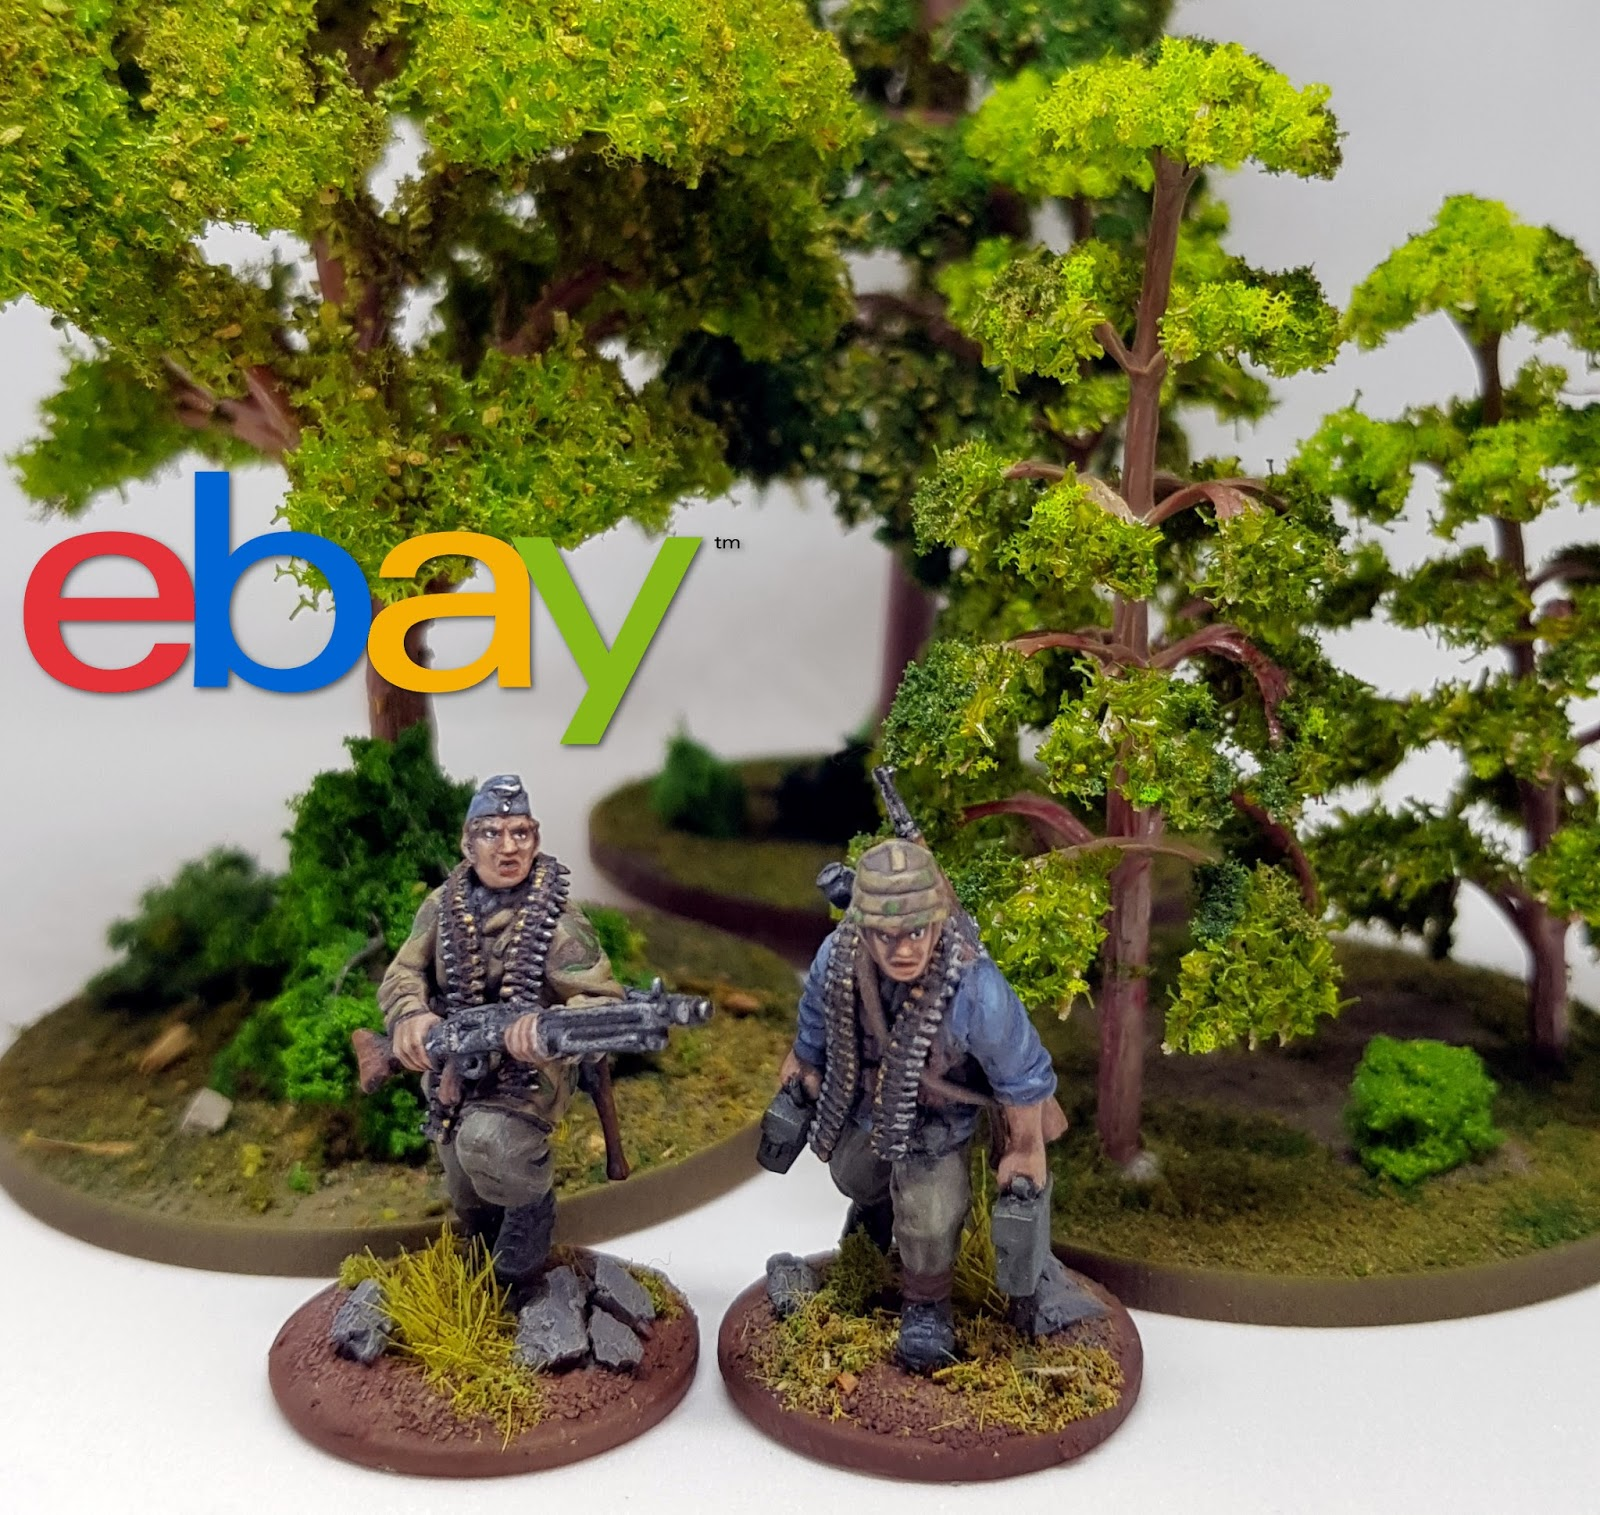 Left Handed Panzerfaust: Ebay Trees for Wargaming - A tutorial to